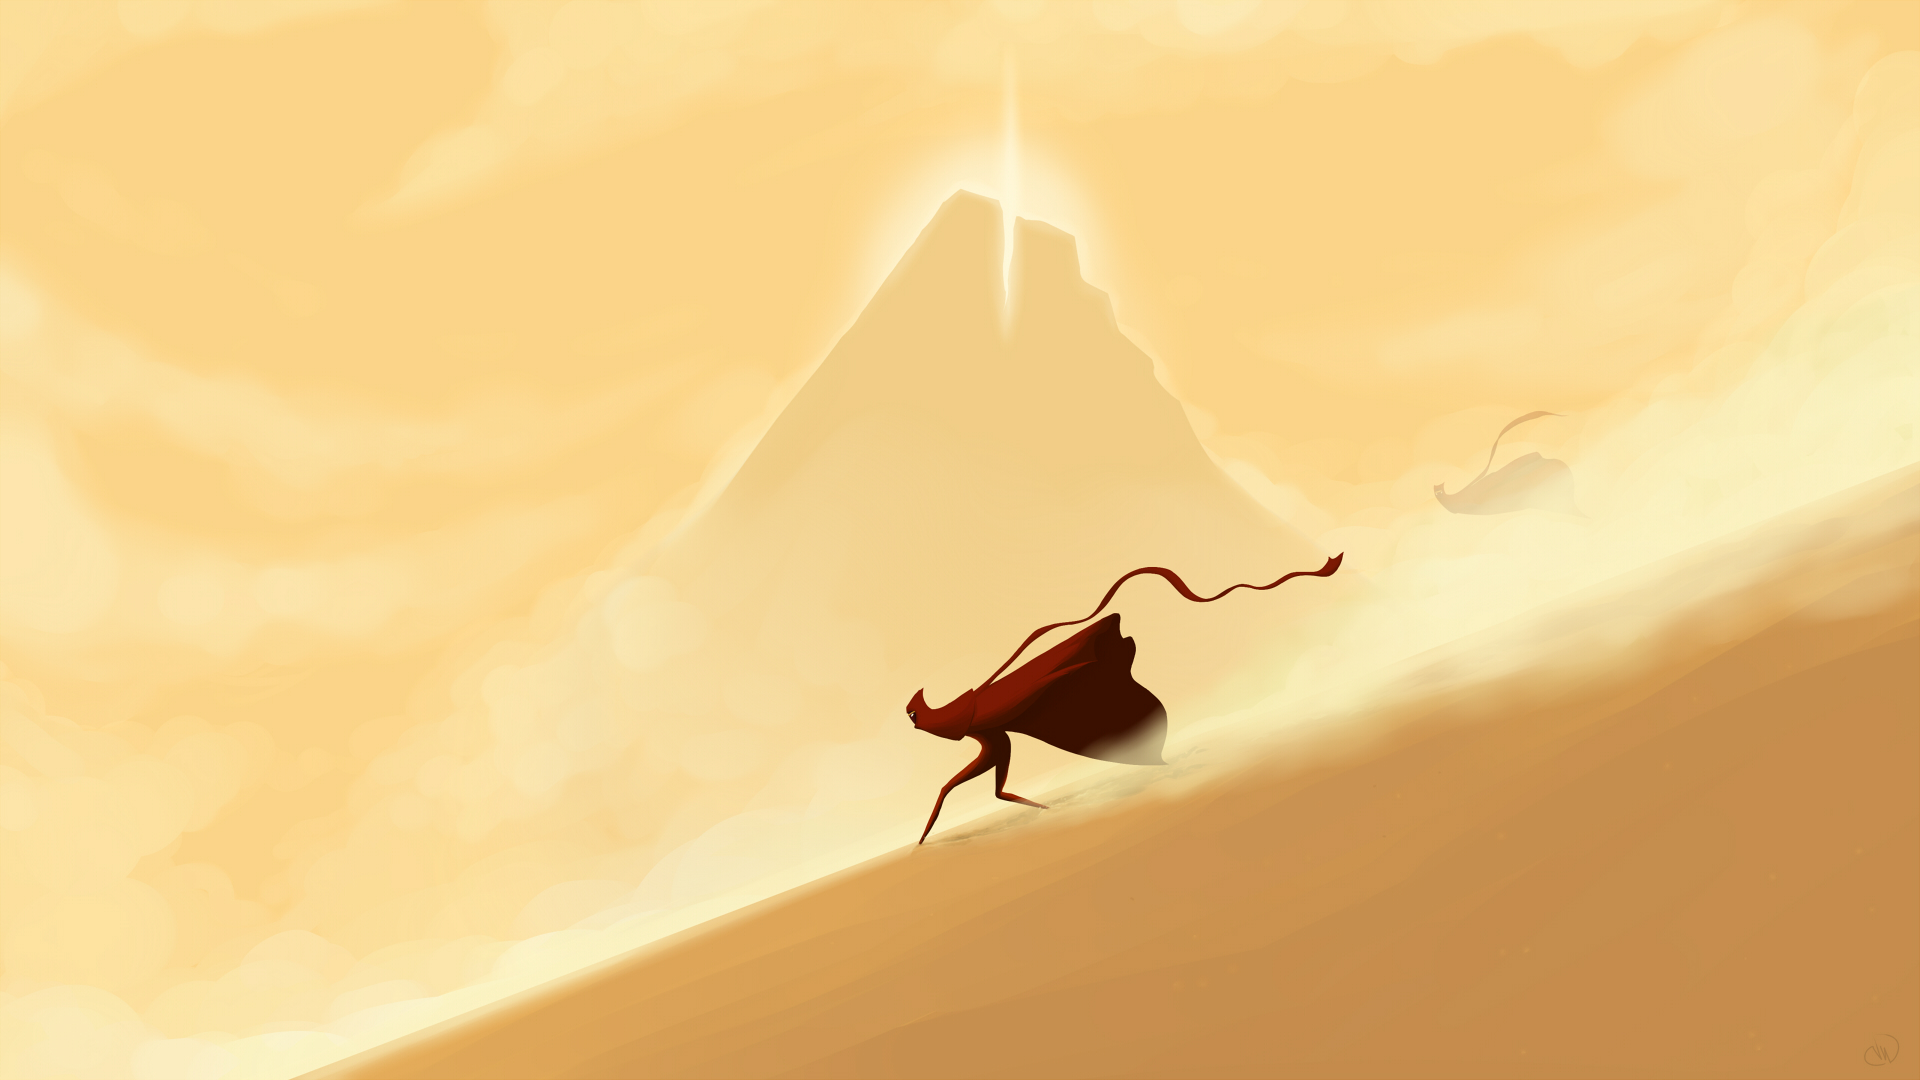 journey wallpaper hd